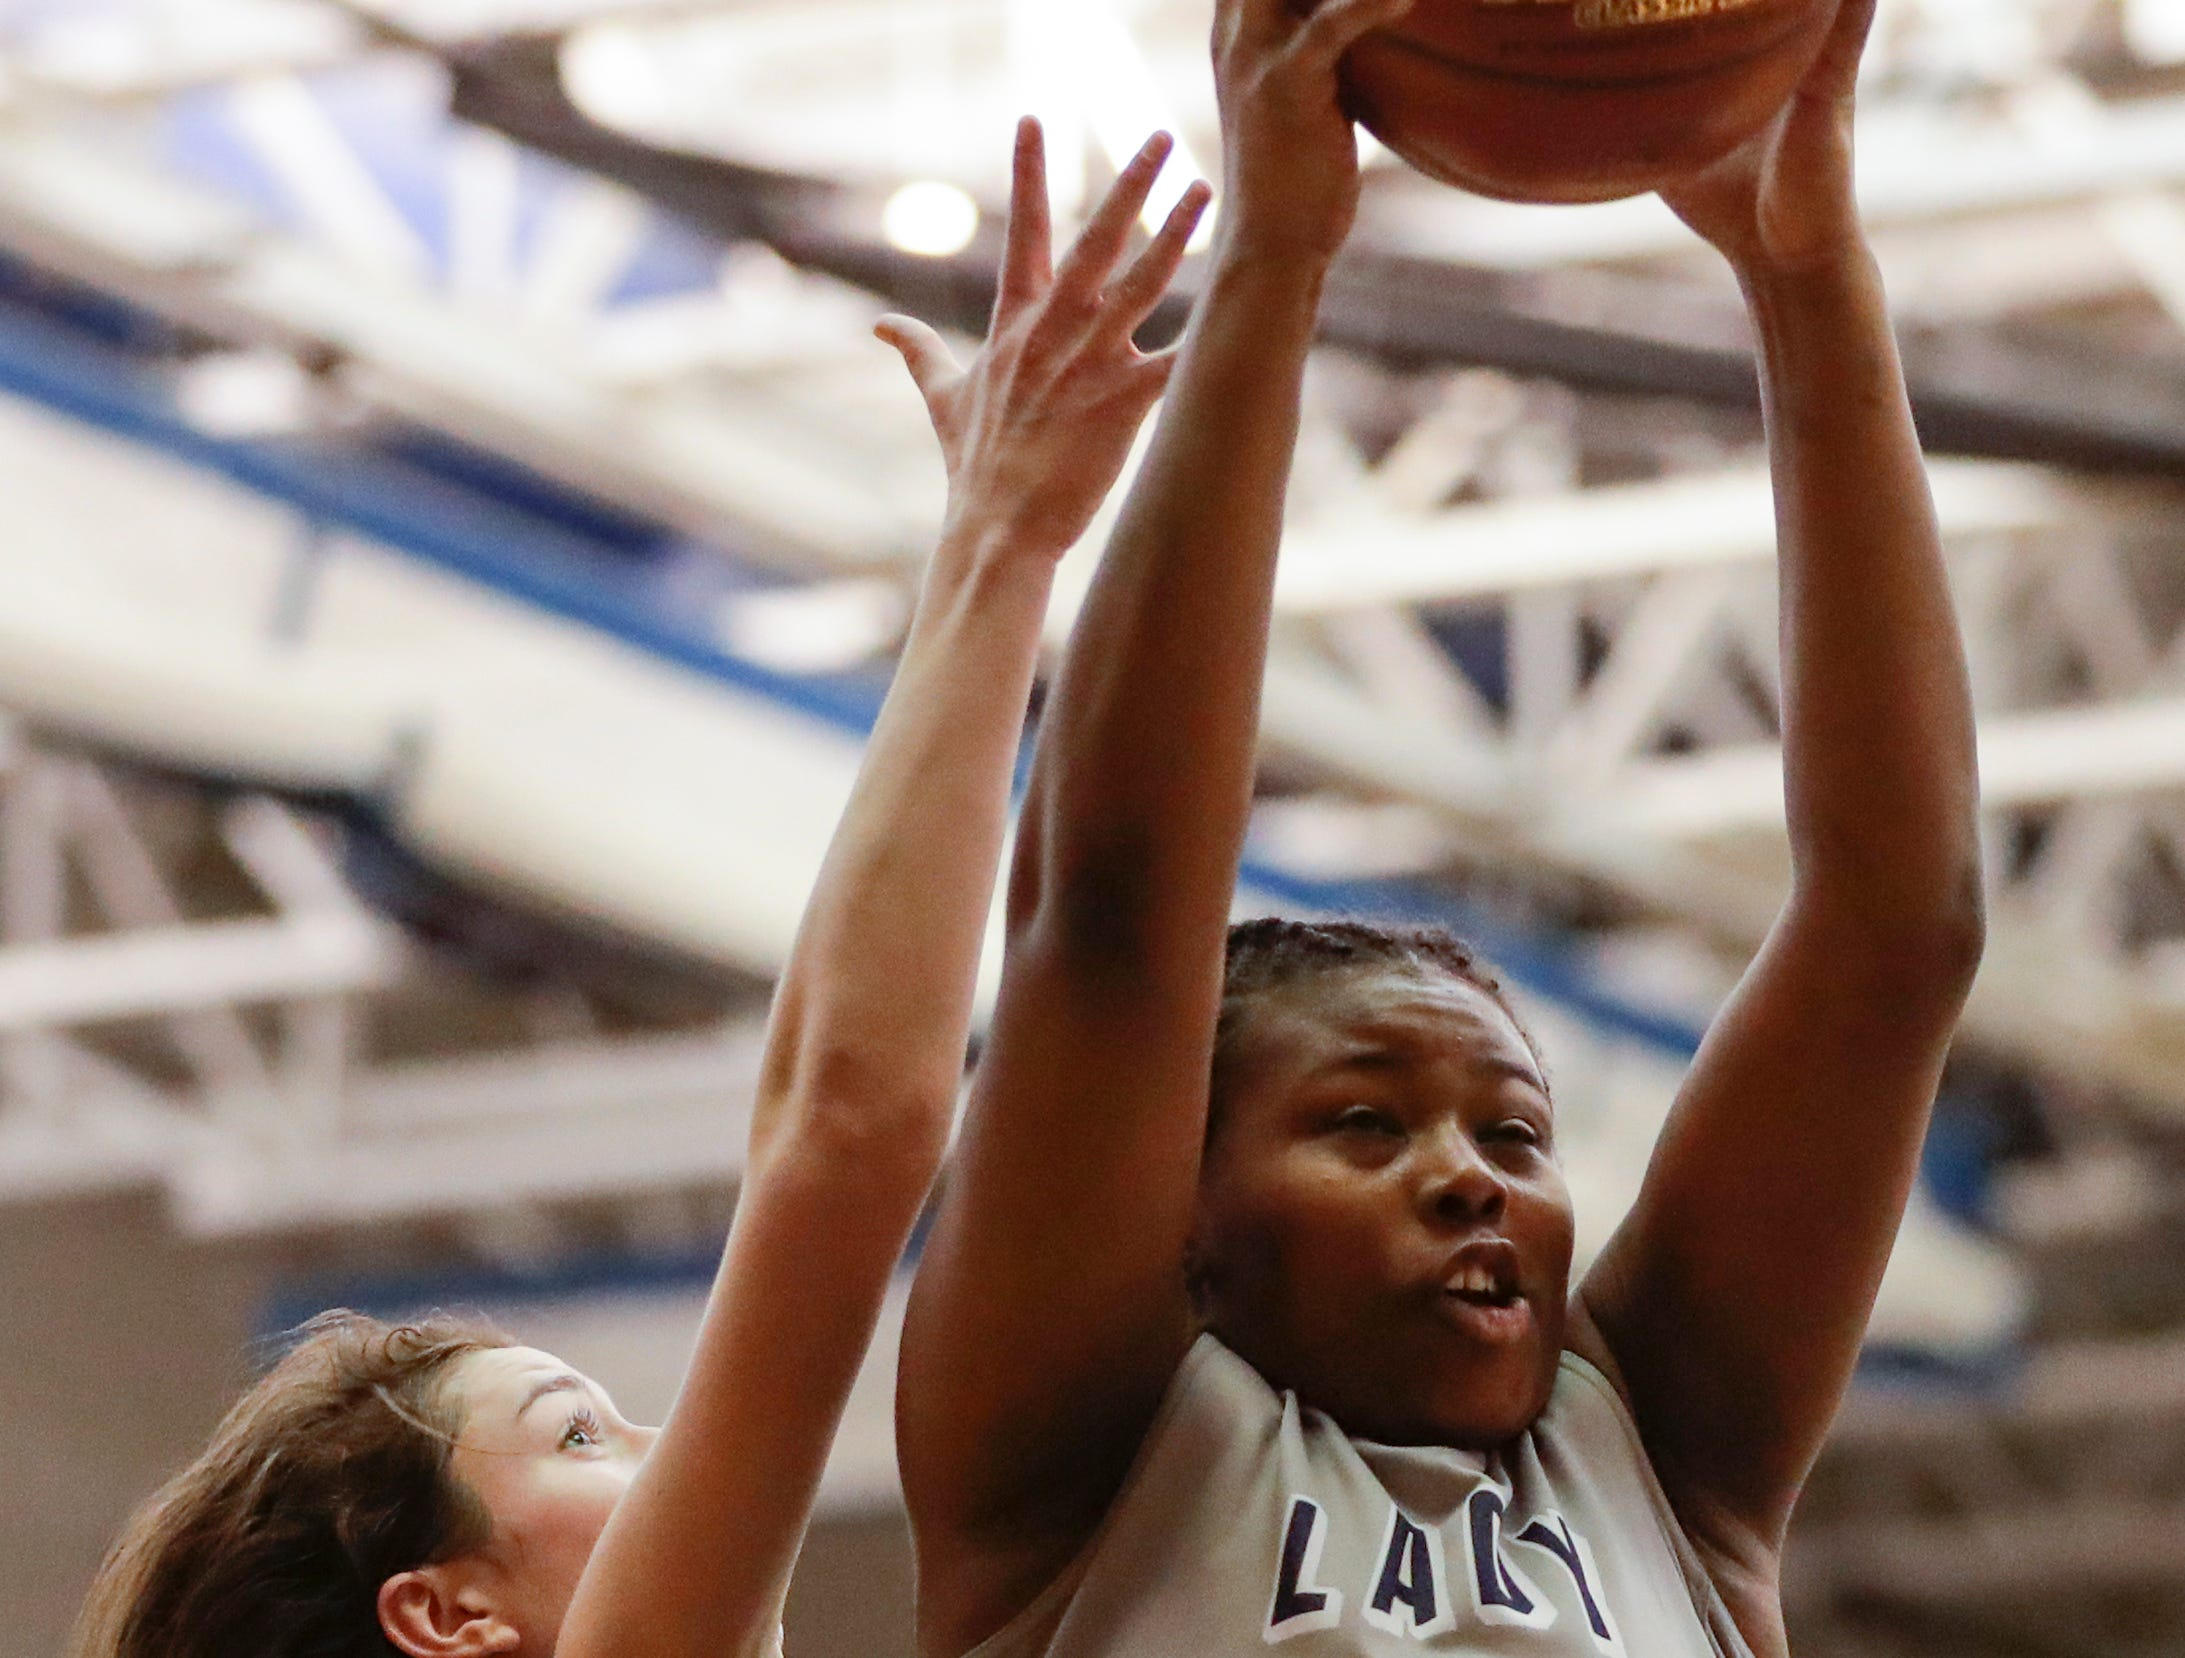 Milwaukee Academy of Science's Nakiyah Hurst (23) rebounds against Howards Grove's Mackenzie Holzwart (4) during a WIAA Division 4 sectional championship game at Sheboygan North High School Saturday, March 2, 2019, in Sheboygan, Wis. Joshua Clark/USA TODAY NETWORK-Wisconsin